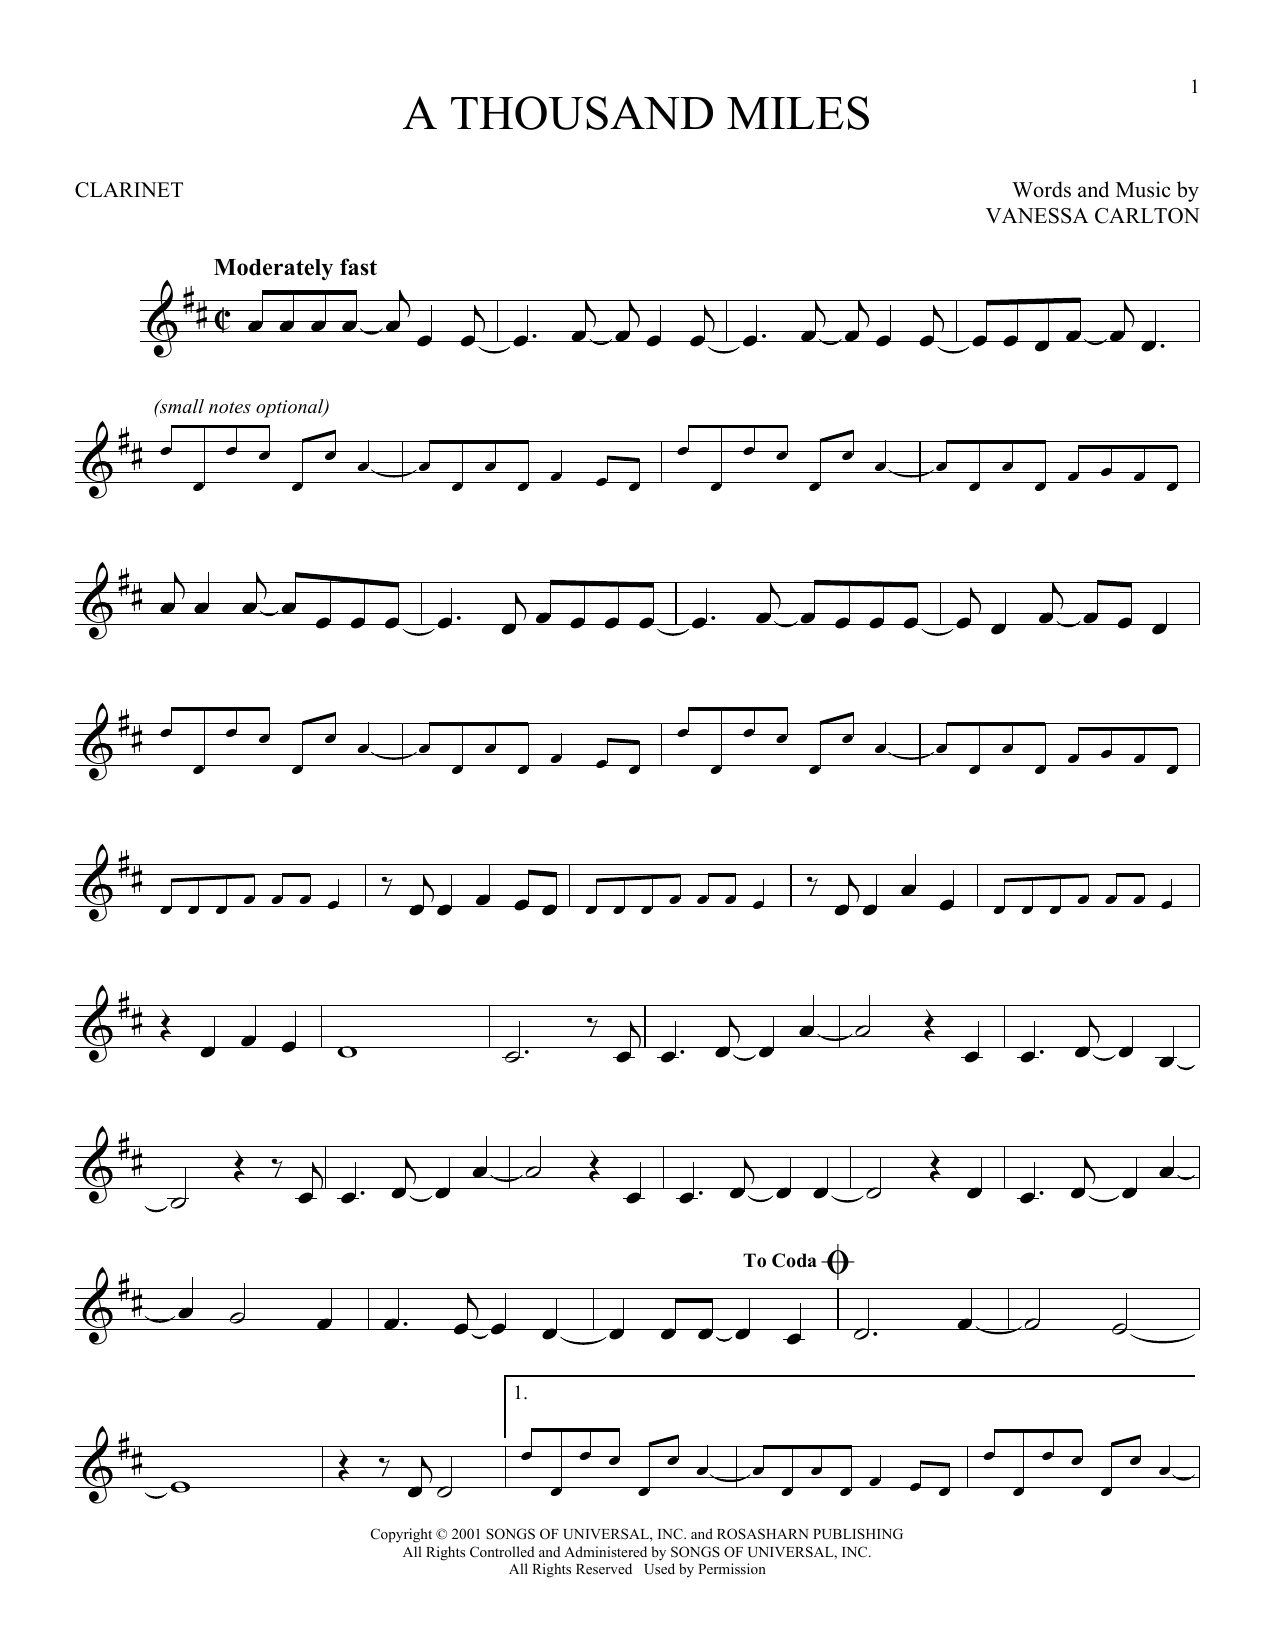 A Thousand Miles (Clarinet Solo)